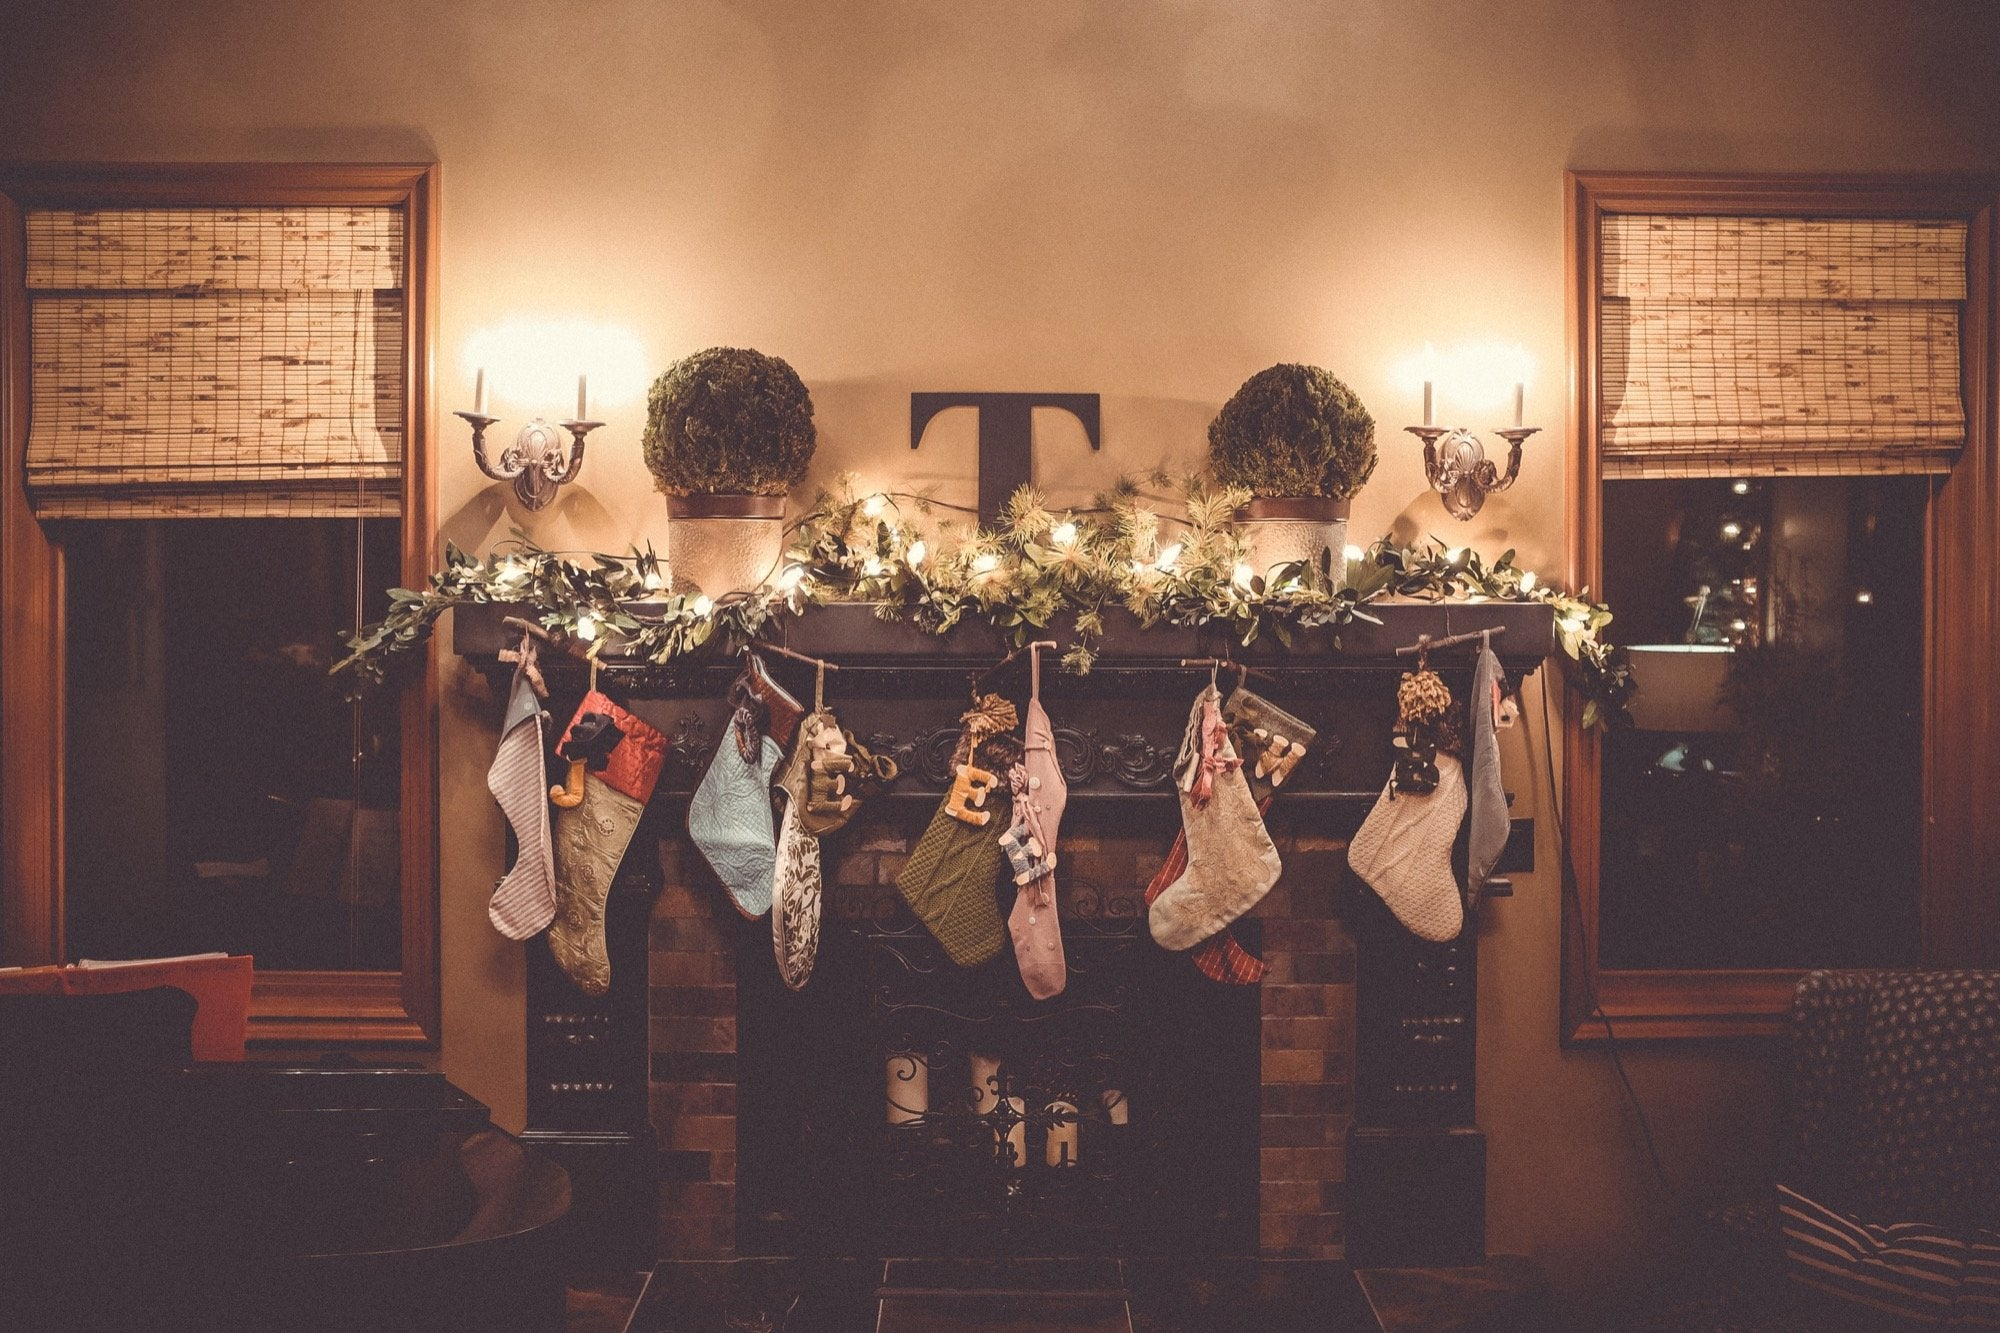 Wait, Why Do We Hang Christmas Stockings? (Plus 24 Little Gift Ideas)